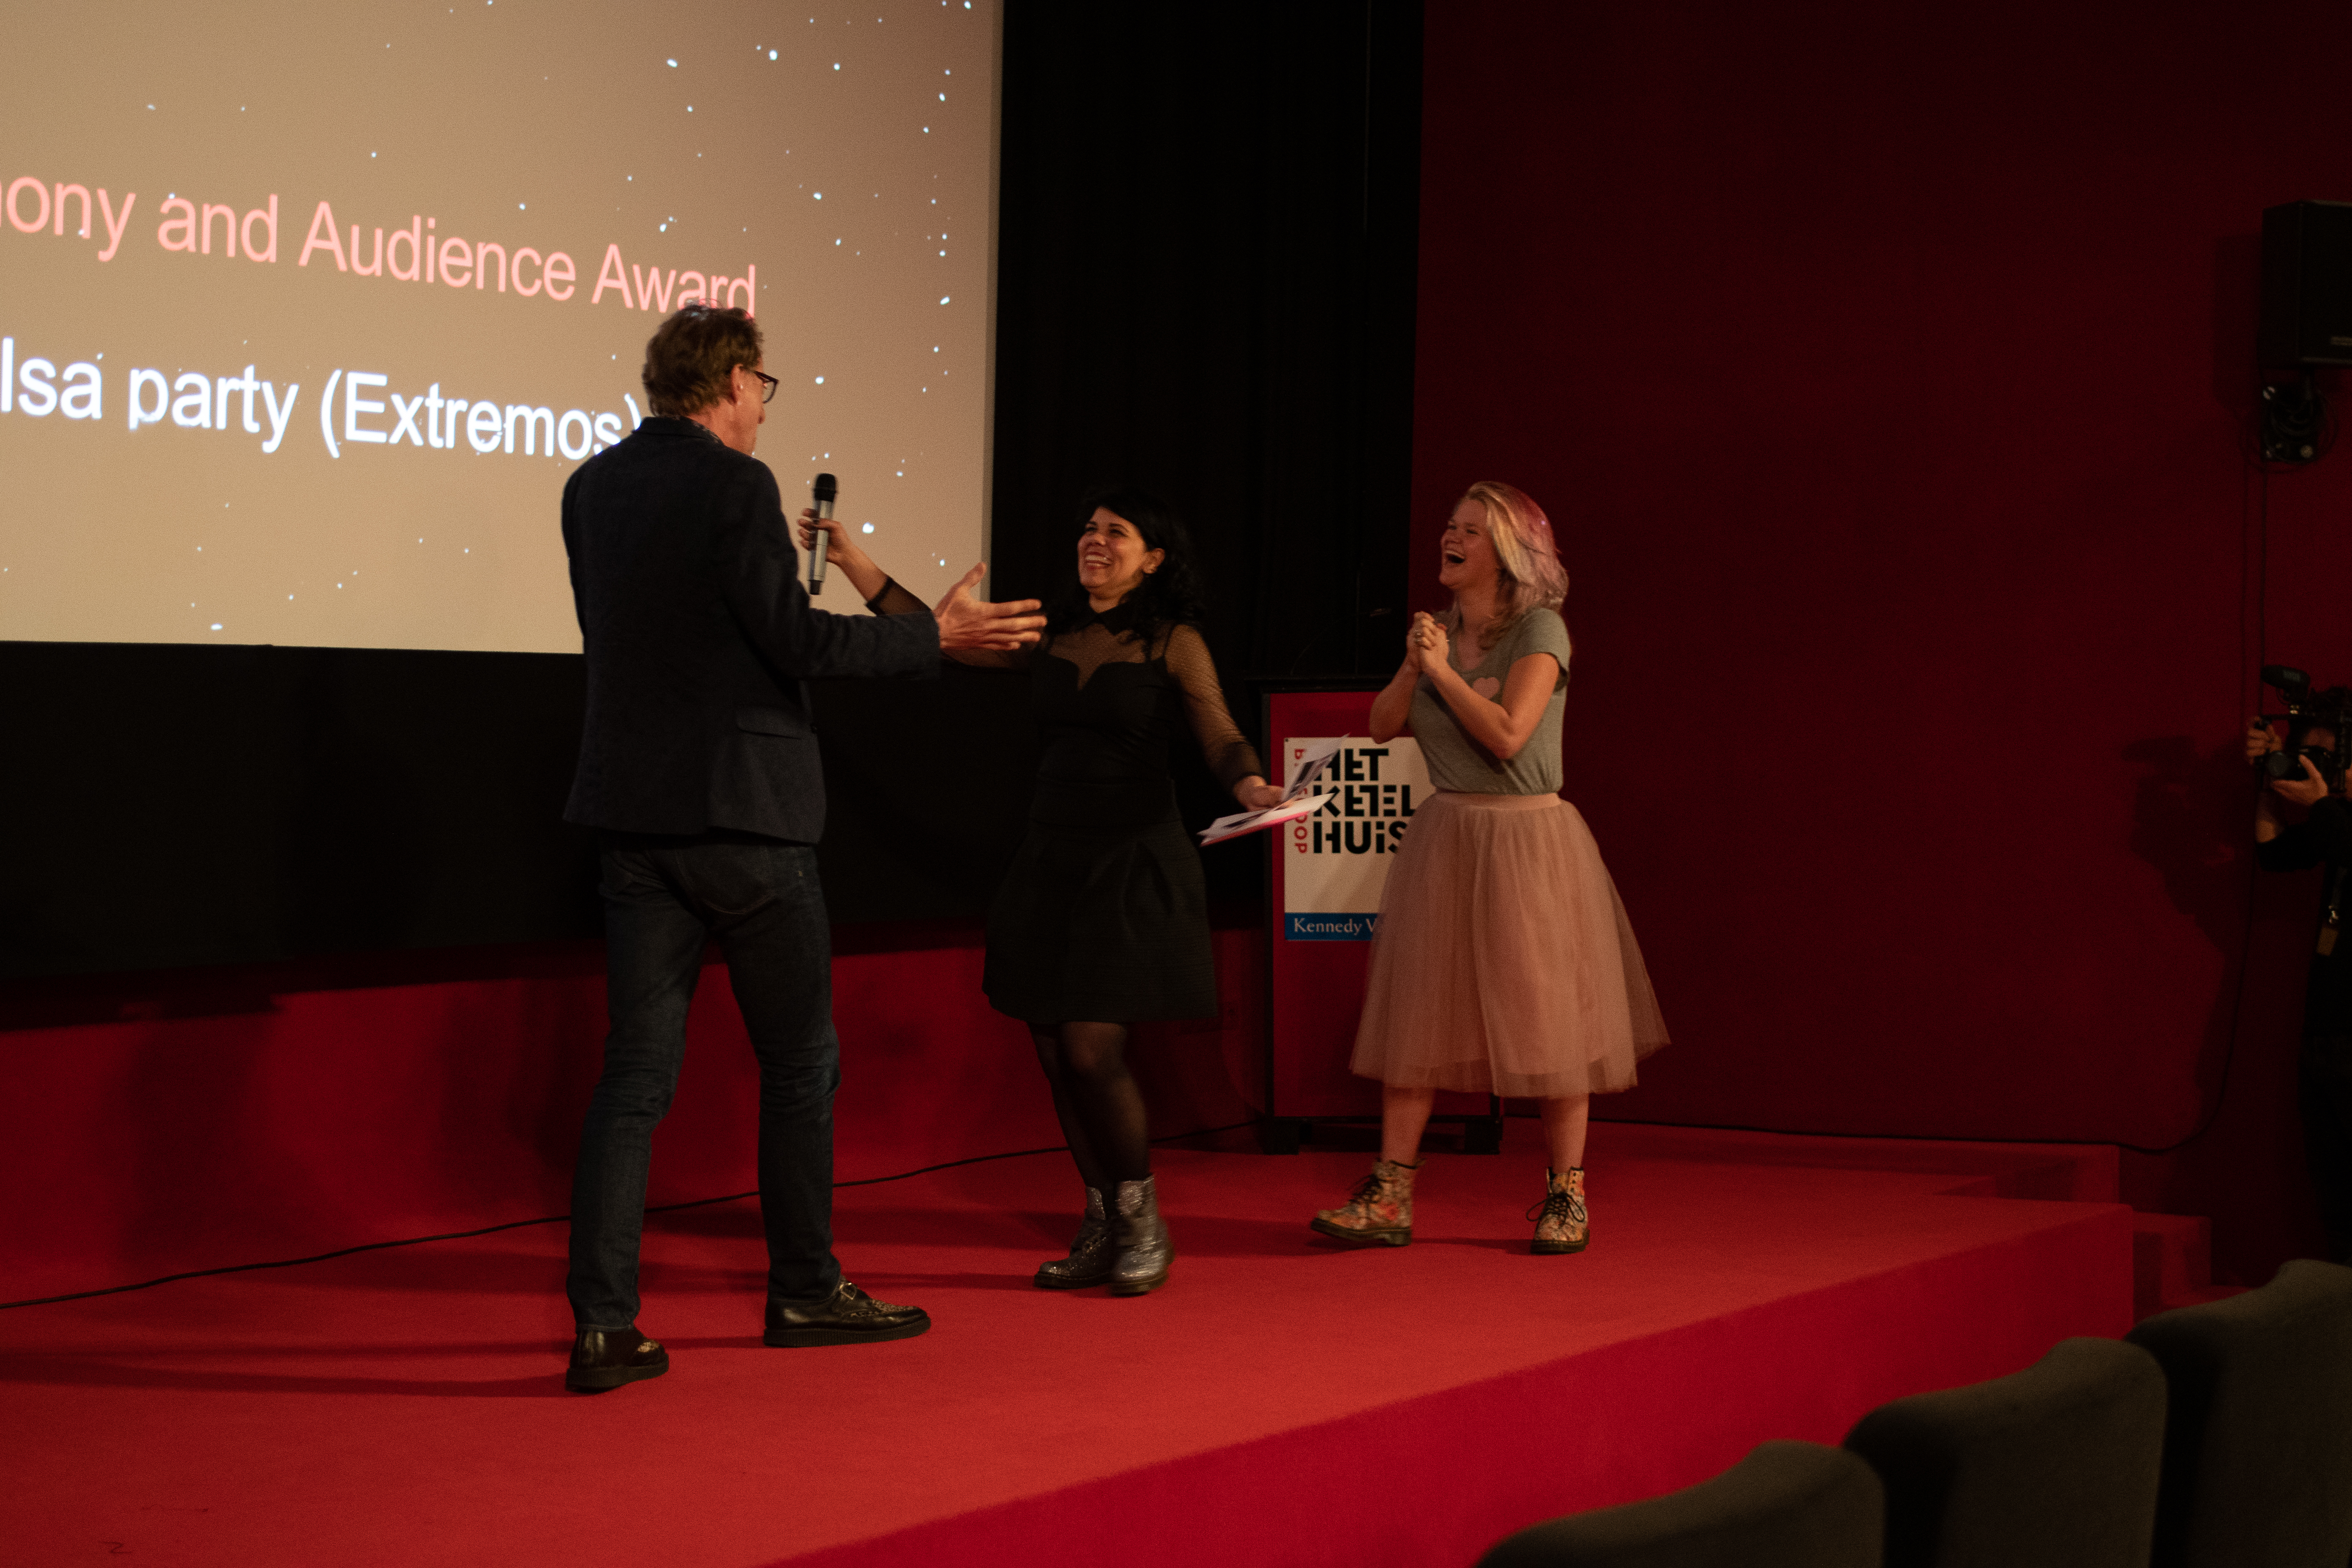 Cheesehead Blues Re-Cut winner of the Audience Award!!